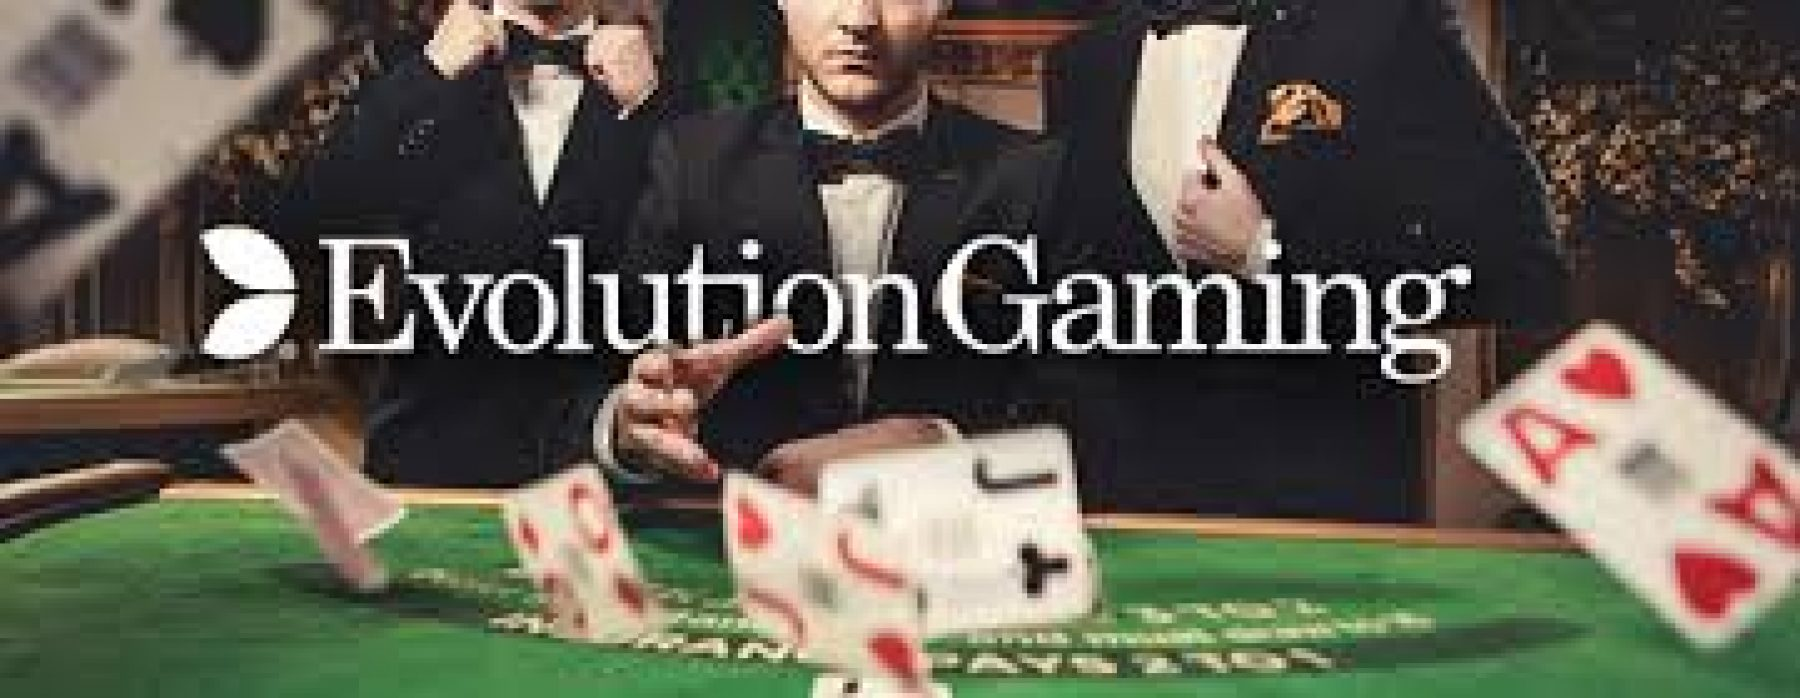 evolutiongame casino